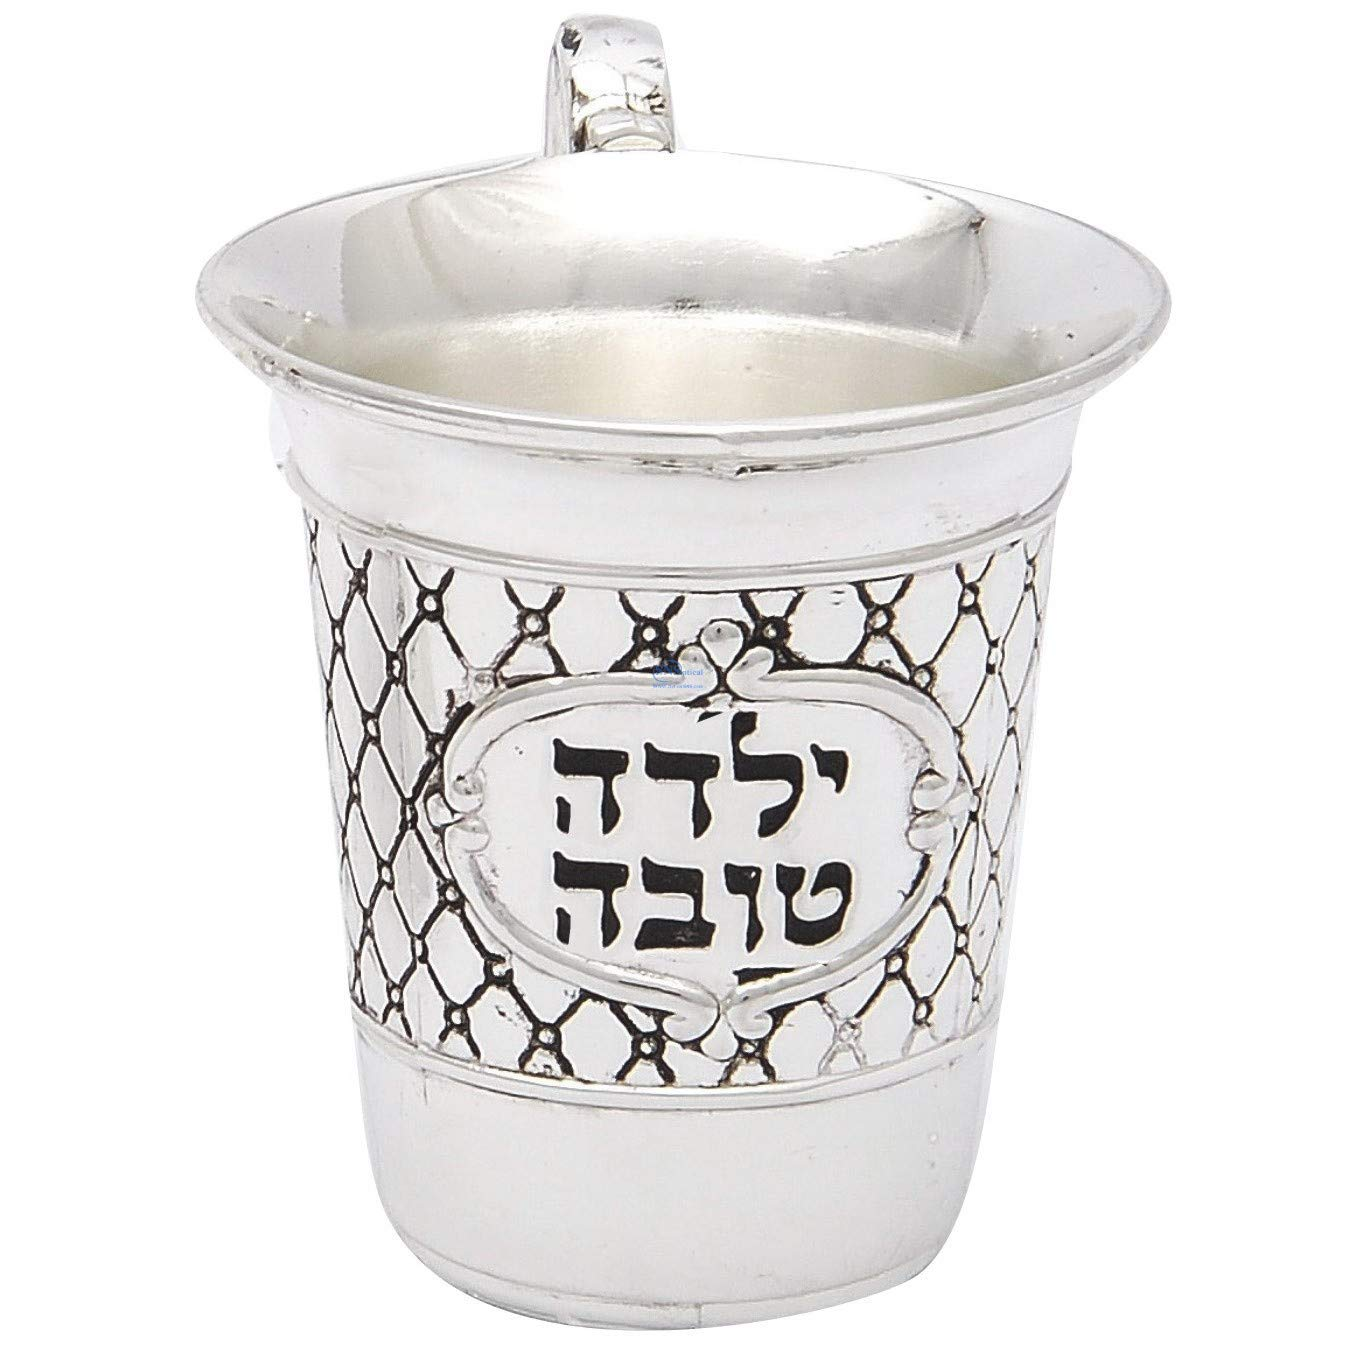 "SNSArts & Judaica Beautiful Child's Kiddush Cup""Yalda Tovah"" 5.5cm, Min QTY order 2 - the price is for 2 pcs"